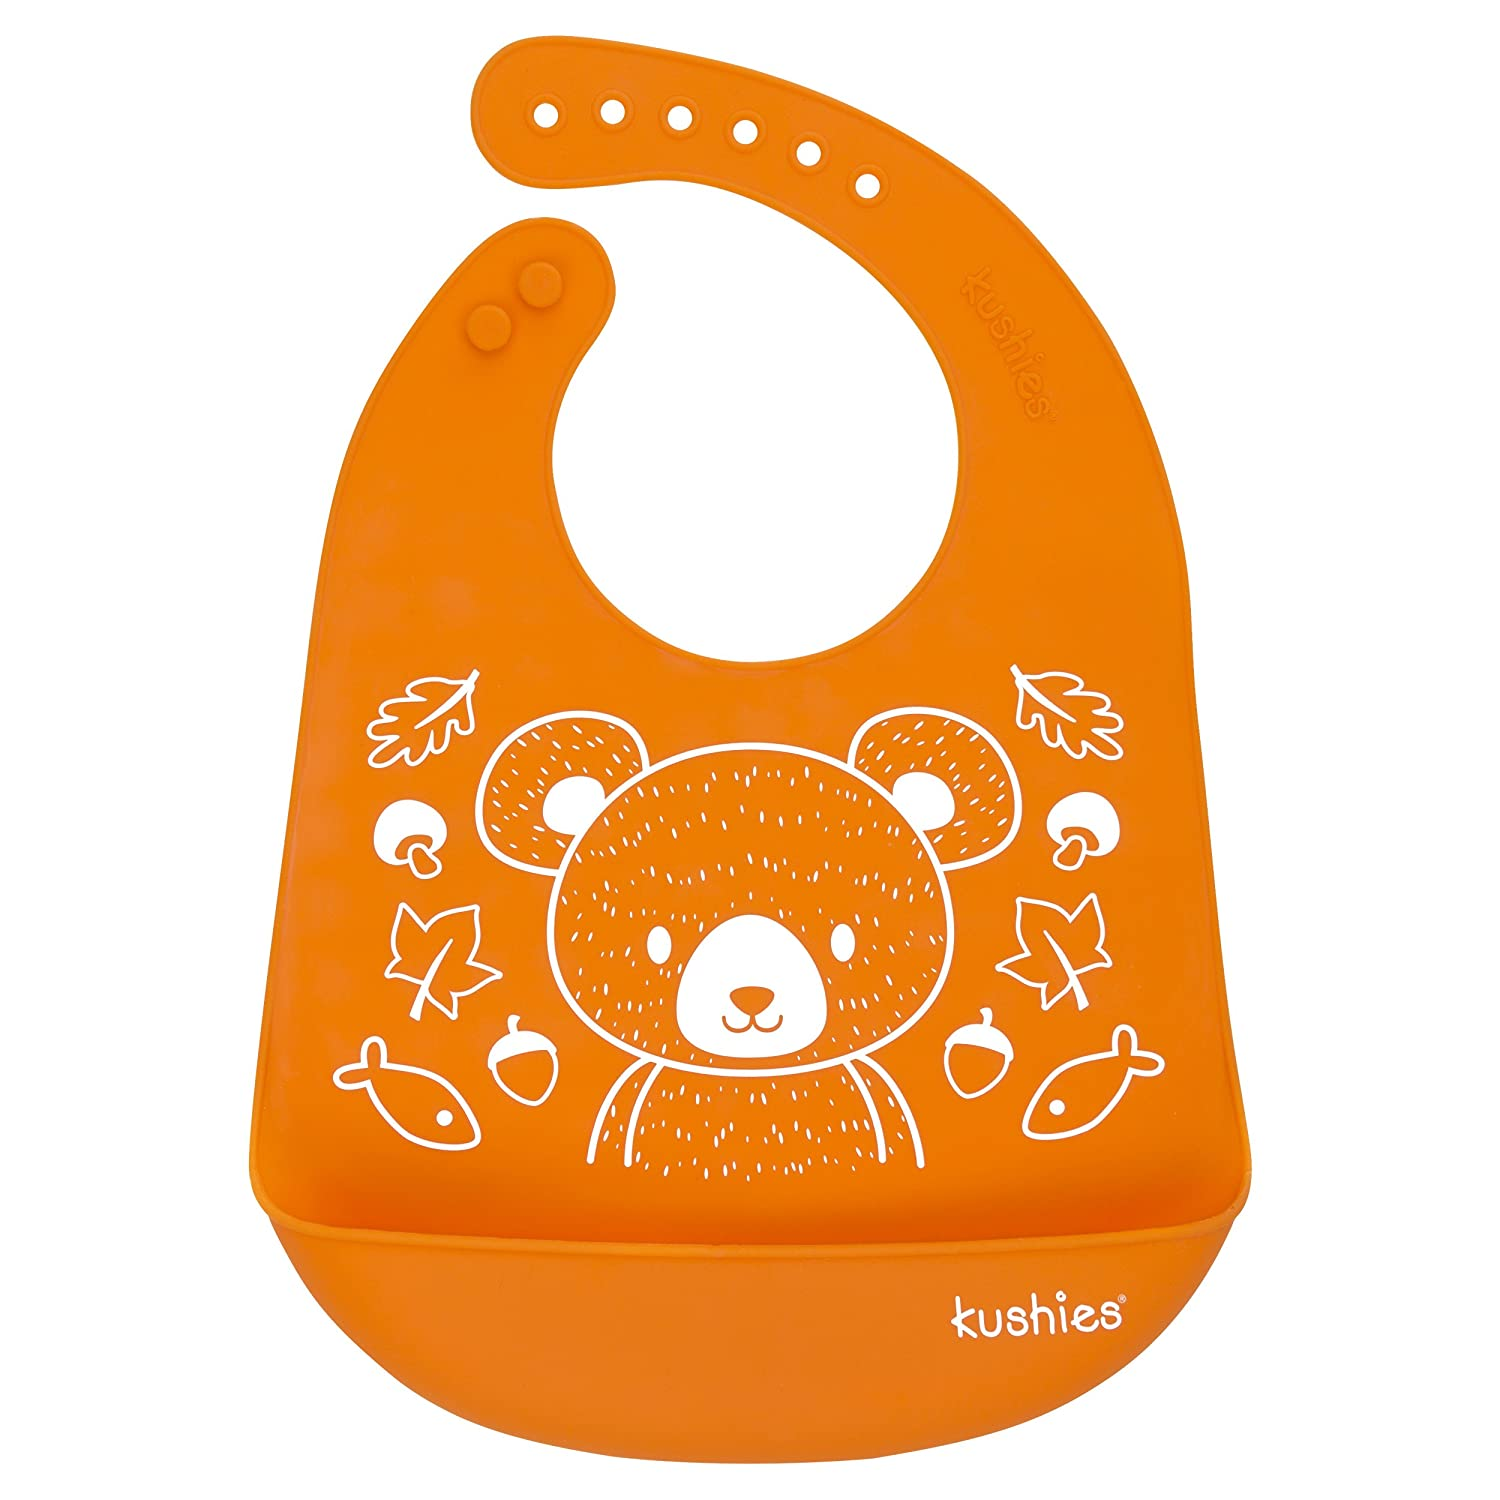 Kushies Silicatch Super Soft Silicone Waterproof Feeding Bib with Catch All/Crumb Catcher, Carrot Orange, 6m + Kushies Baby B306-N02